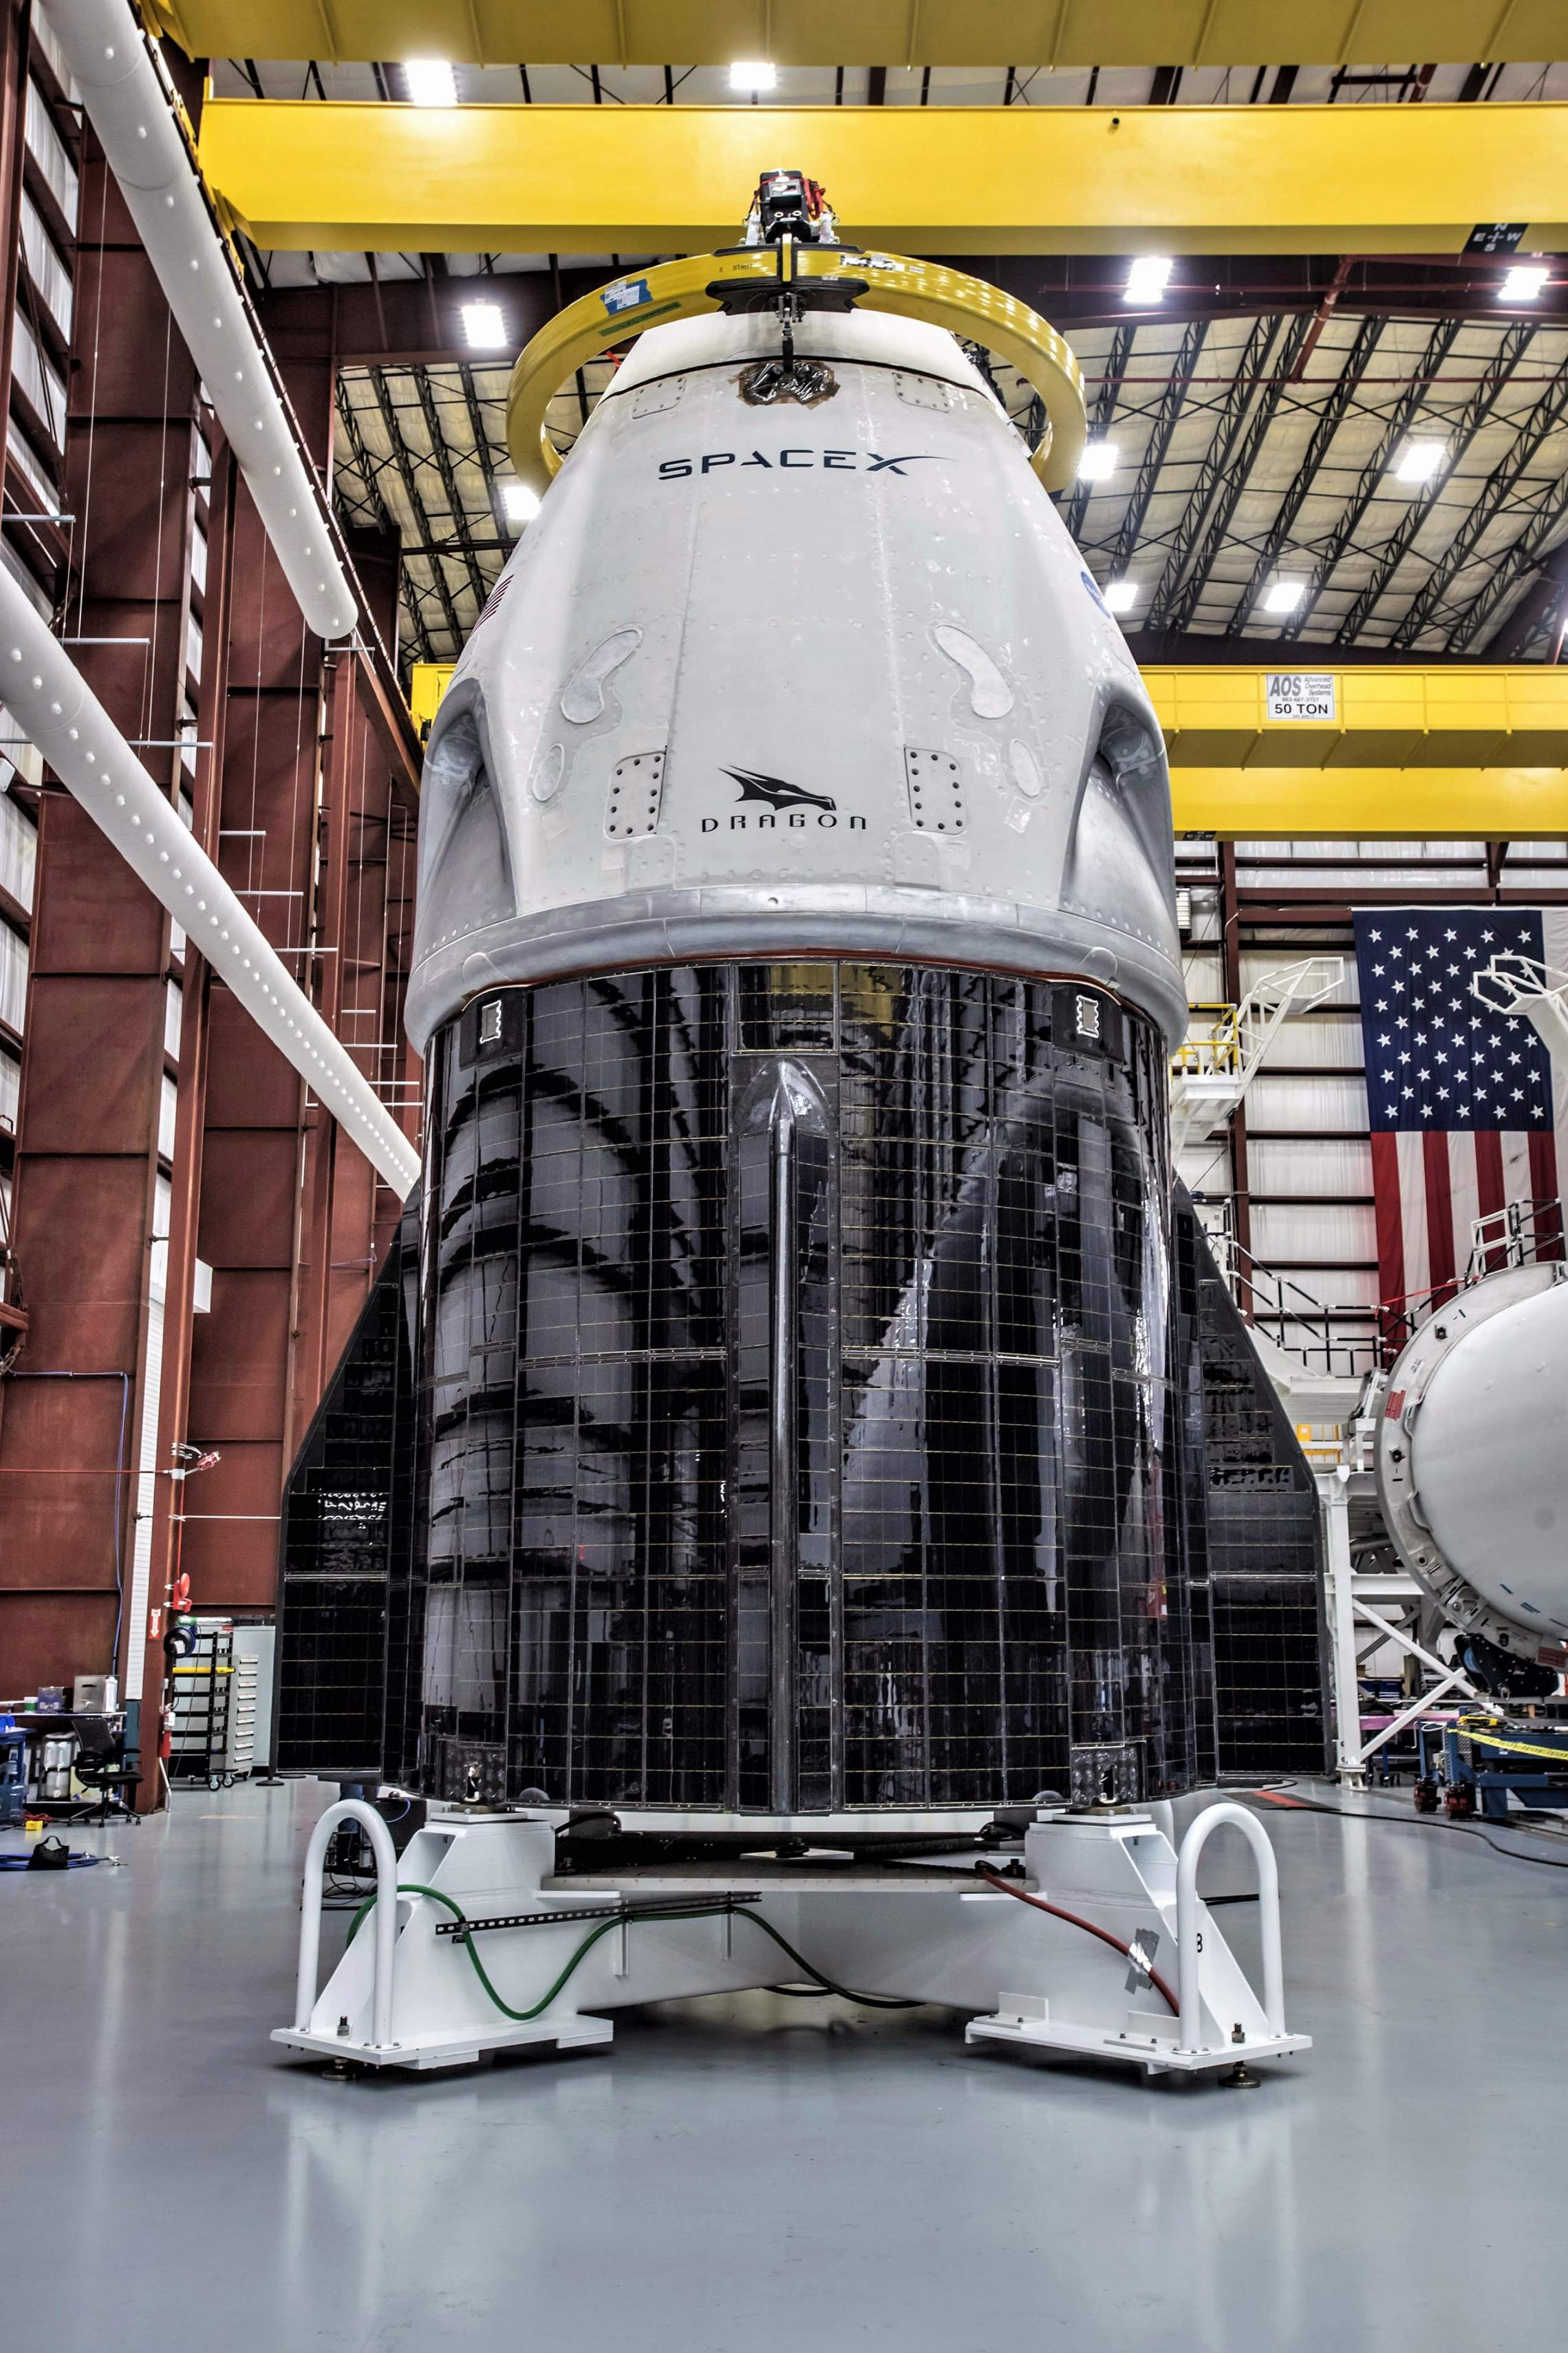 Crew Dragon DM-1 integrated 39A (SpaceX)(c)